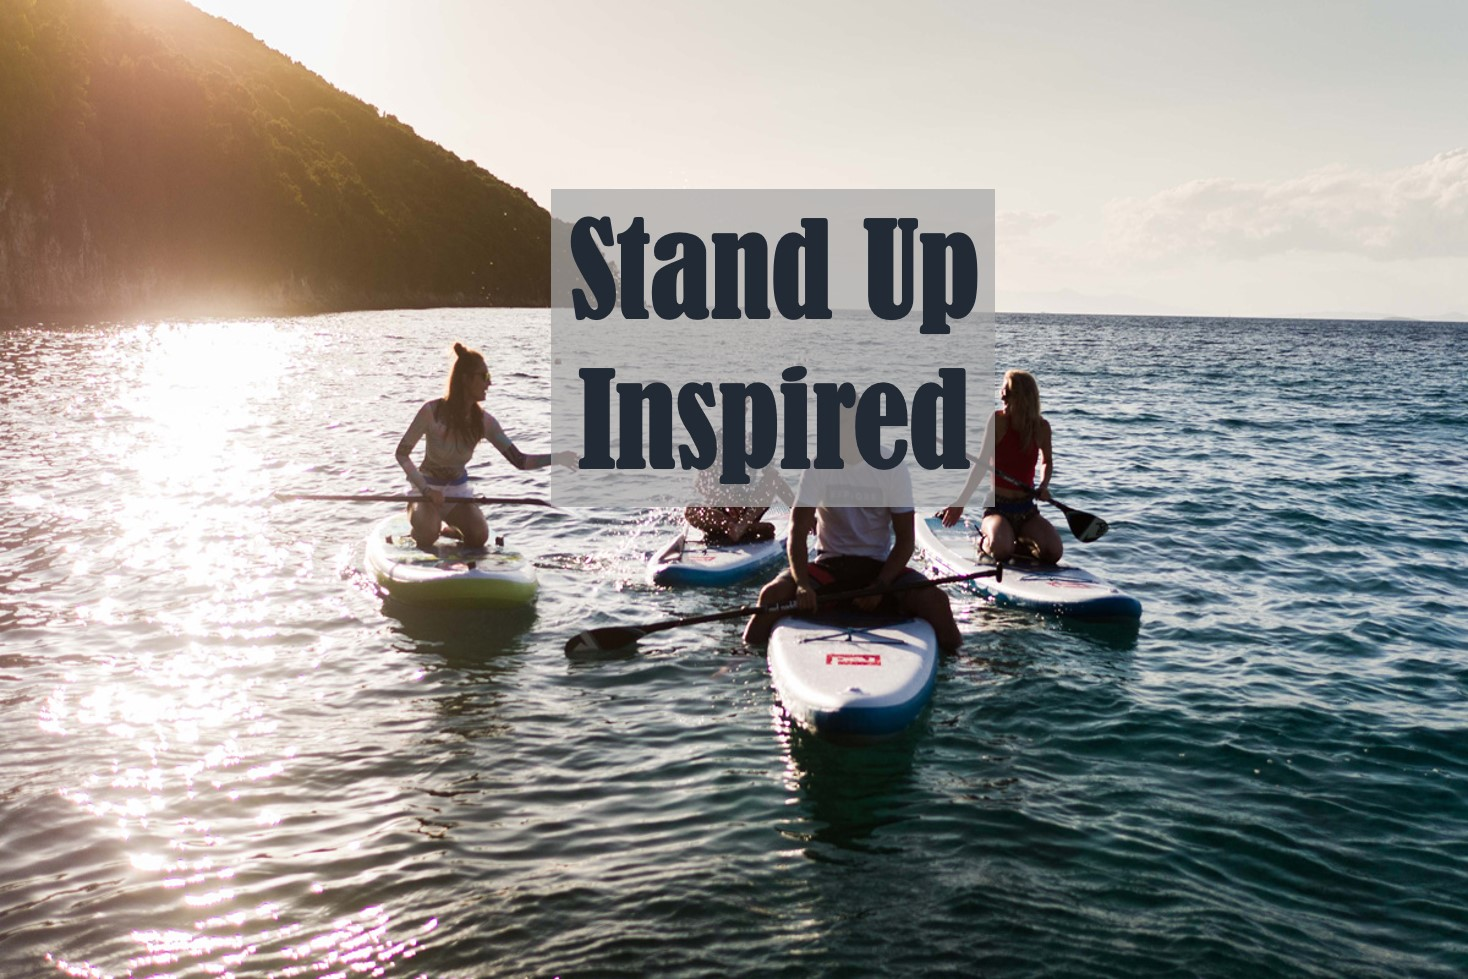 STANDING UP ON YOUR OWN TWO FEET. WE CAN TAKE YOU OUT ON THE WATER, LOCATIONS CLOSE TO YOU OR AT OUR STAND UP PADDLE CO PARTNERS IN DEVON.